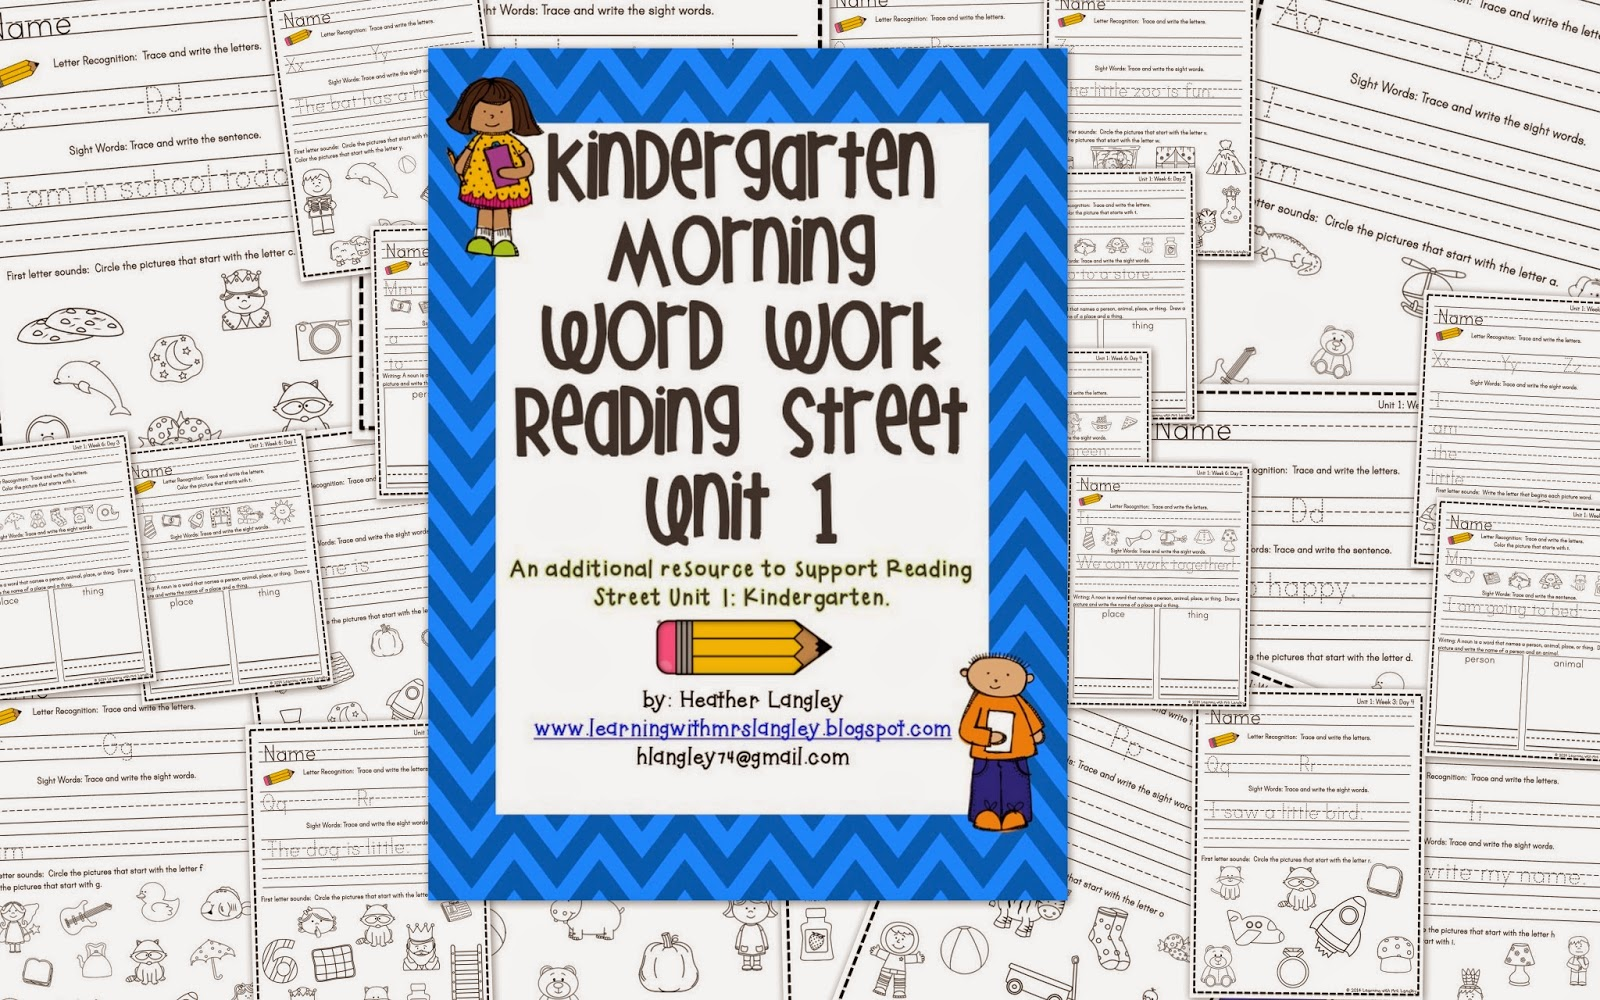 http://www.teacherspayteachers.com/Product/Kindergarten-Morning-Word-Work-Reading-Street-Unit-1-1173277